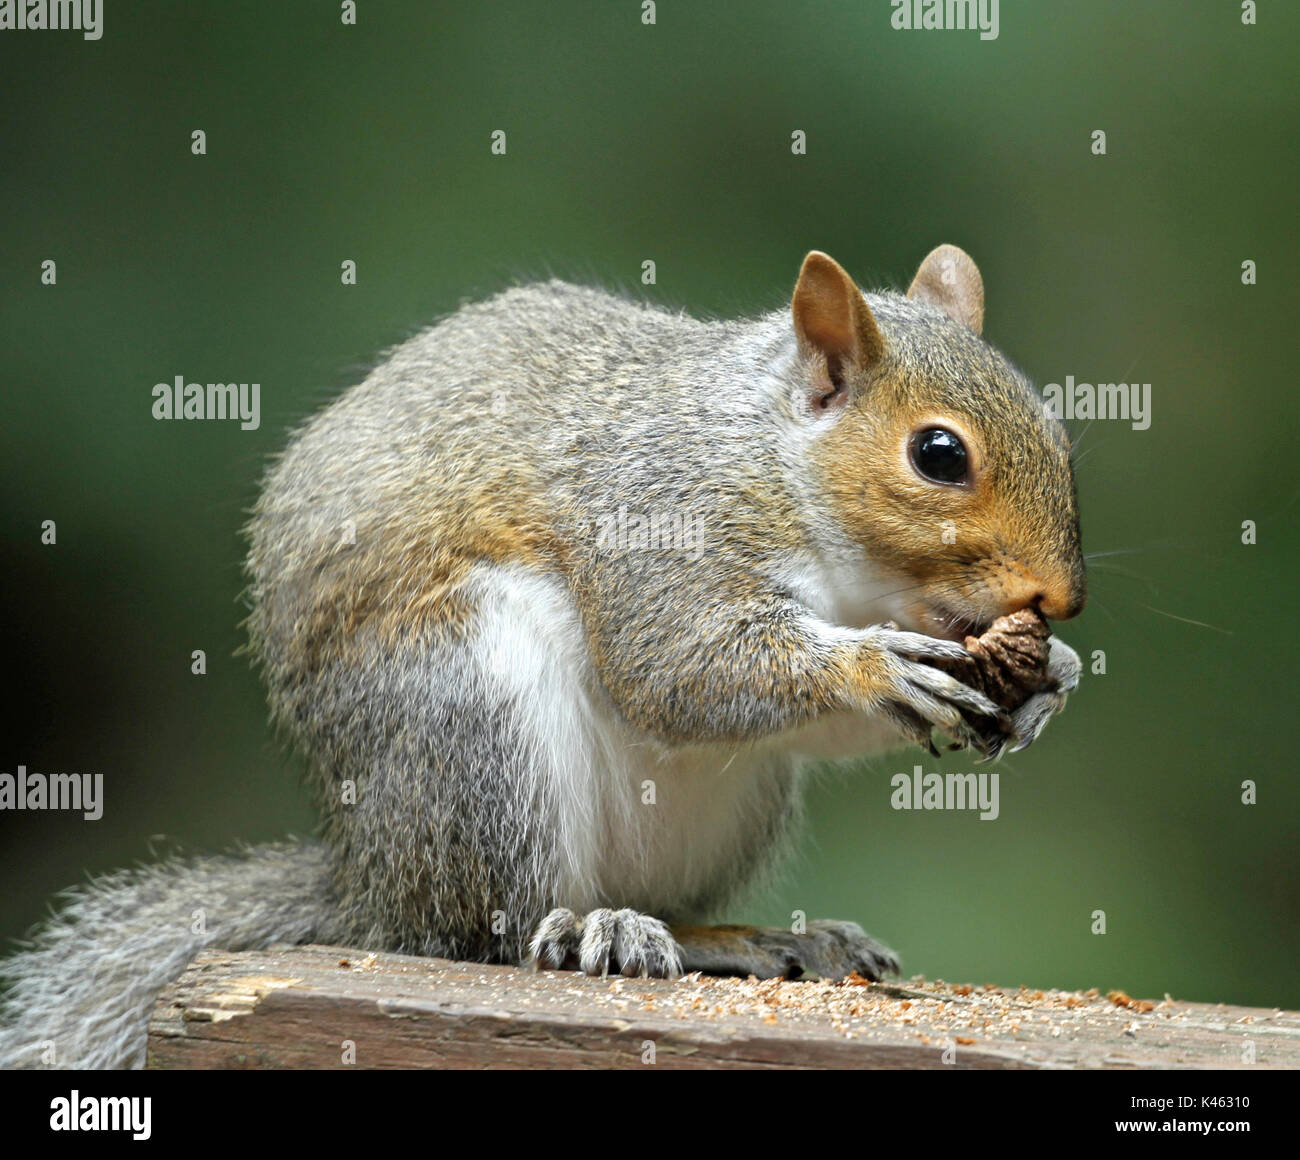 Close-up of a chubby Eastern gray squirrel (Sciurus carolinensis) clutching some tree bark in its paws while sitting on a wooden railing - Stock Image